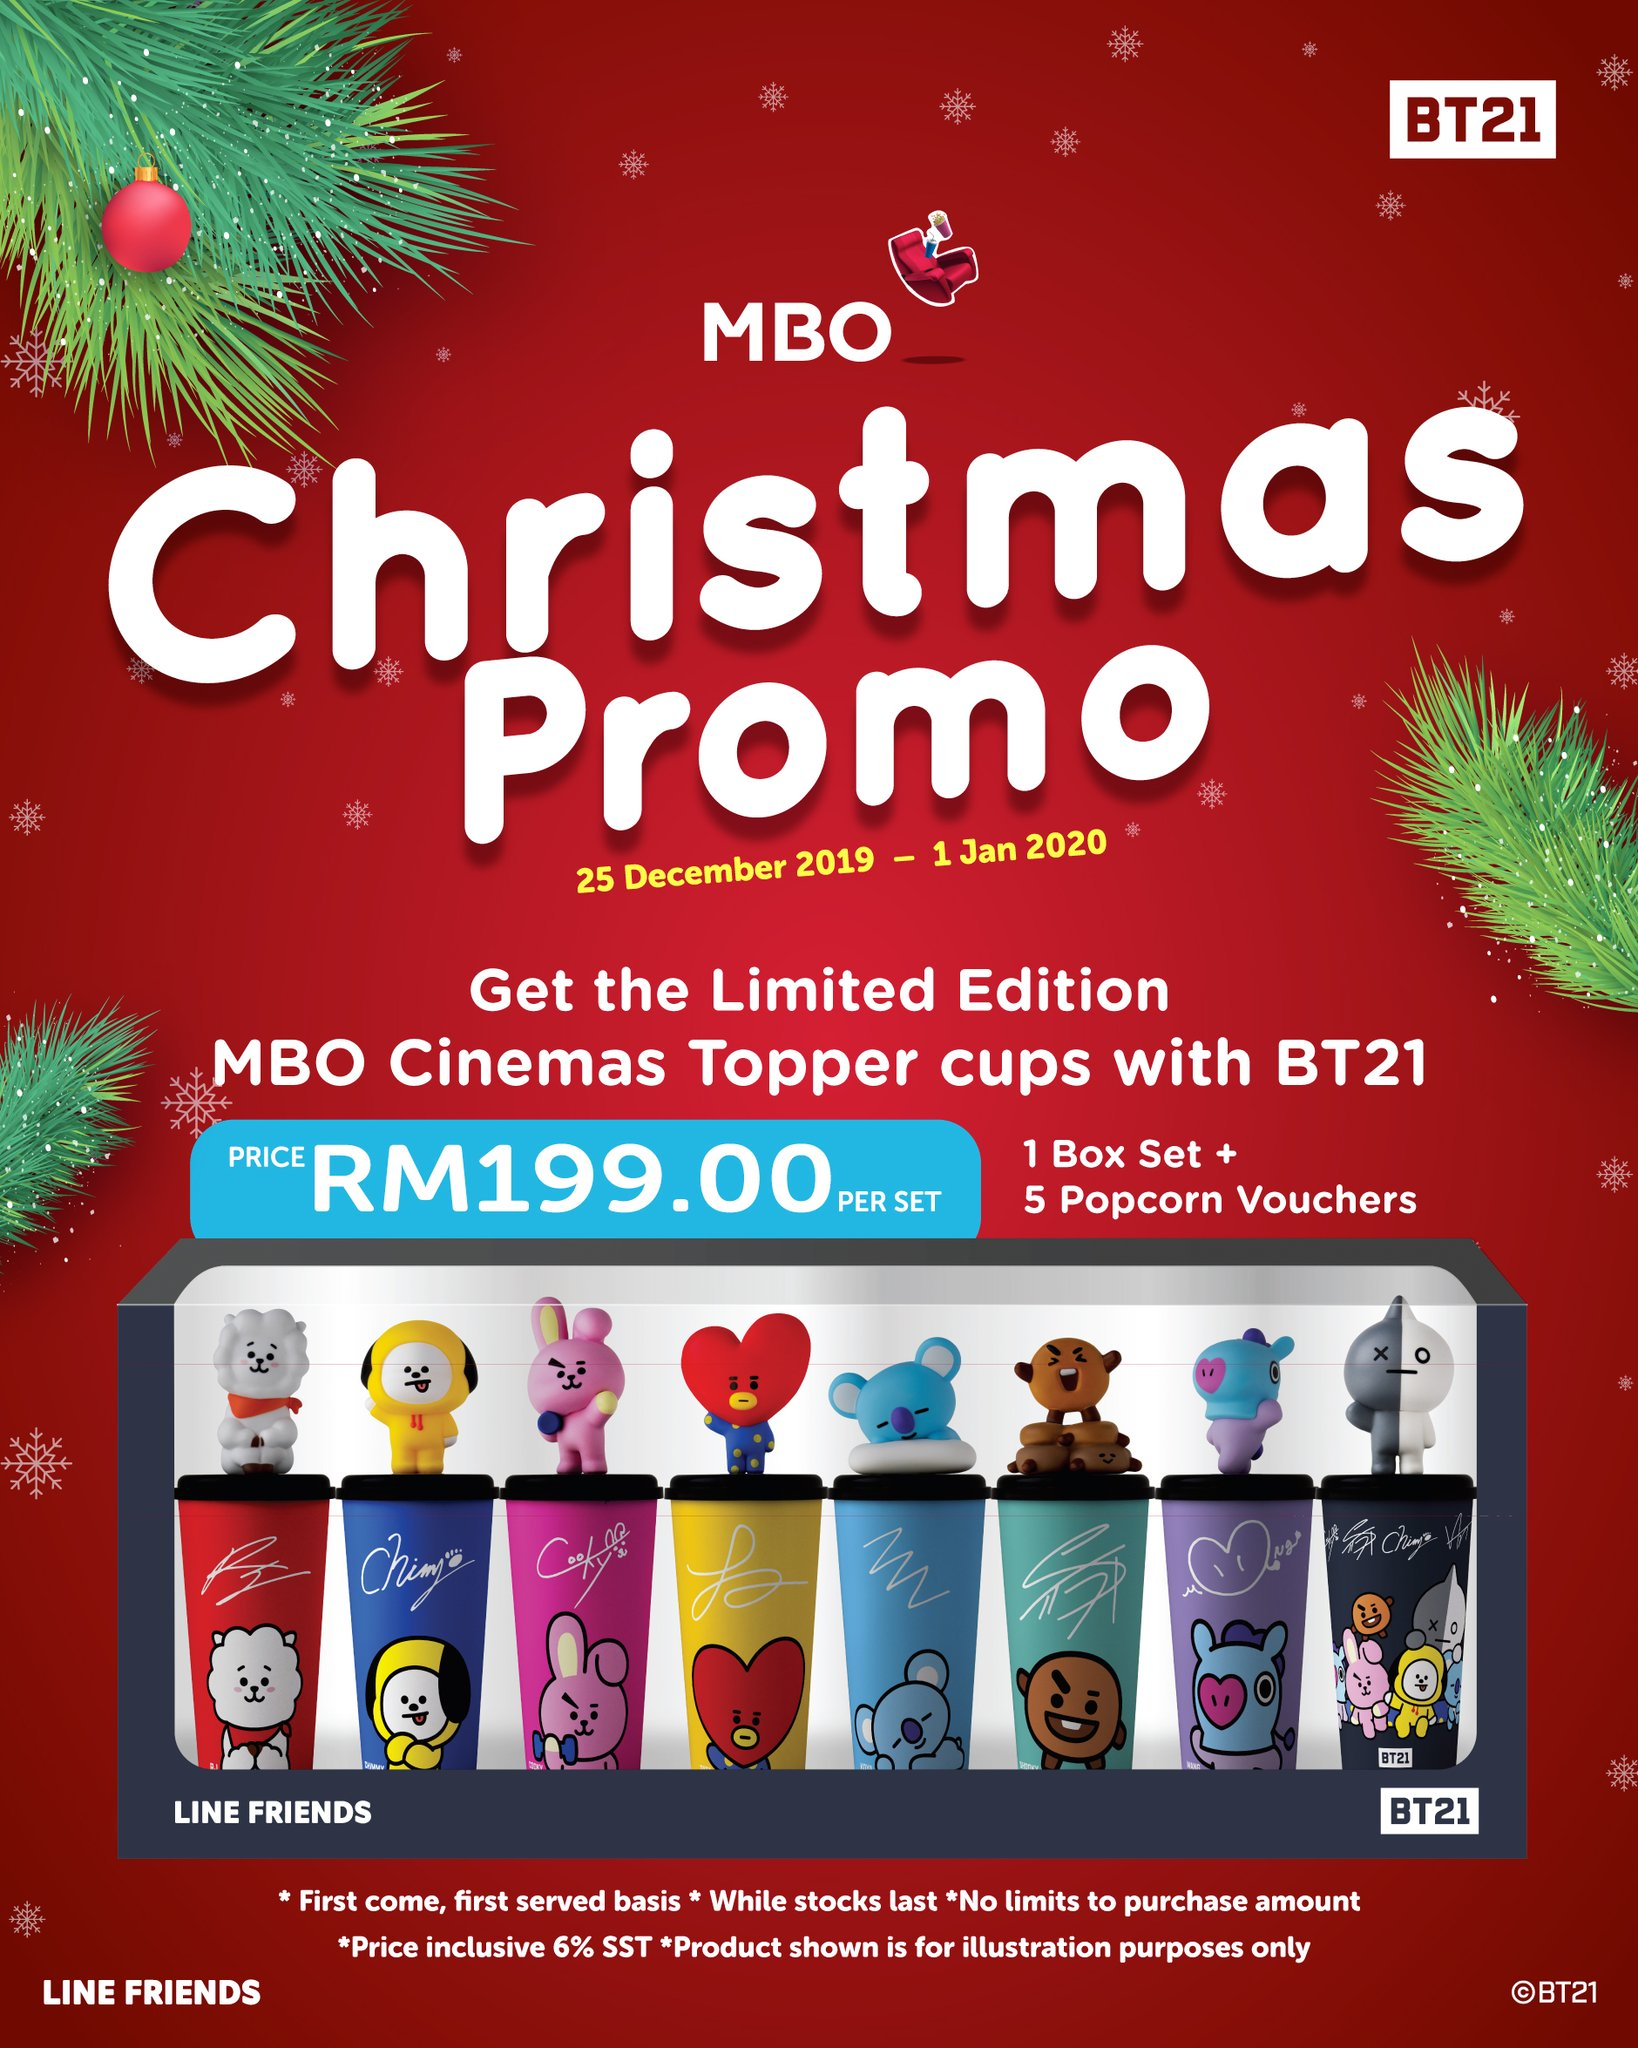 Mbo Cinemas On Twitter Christmas Time Is The Best Time To Own